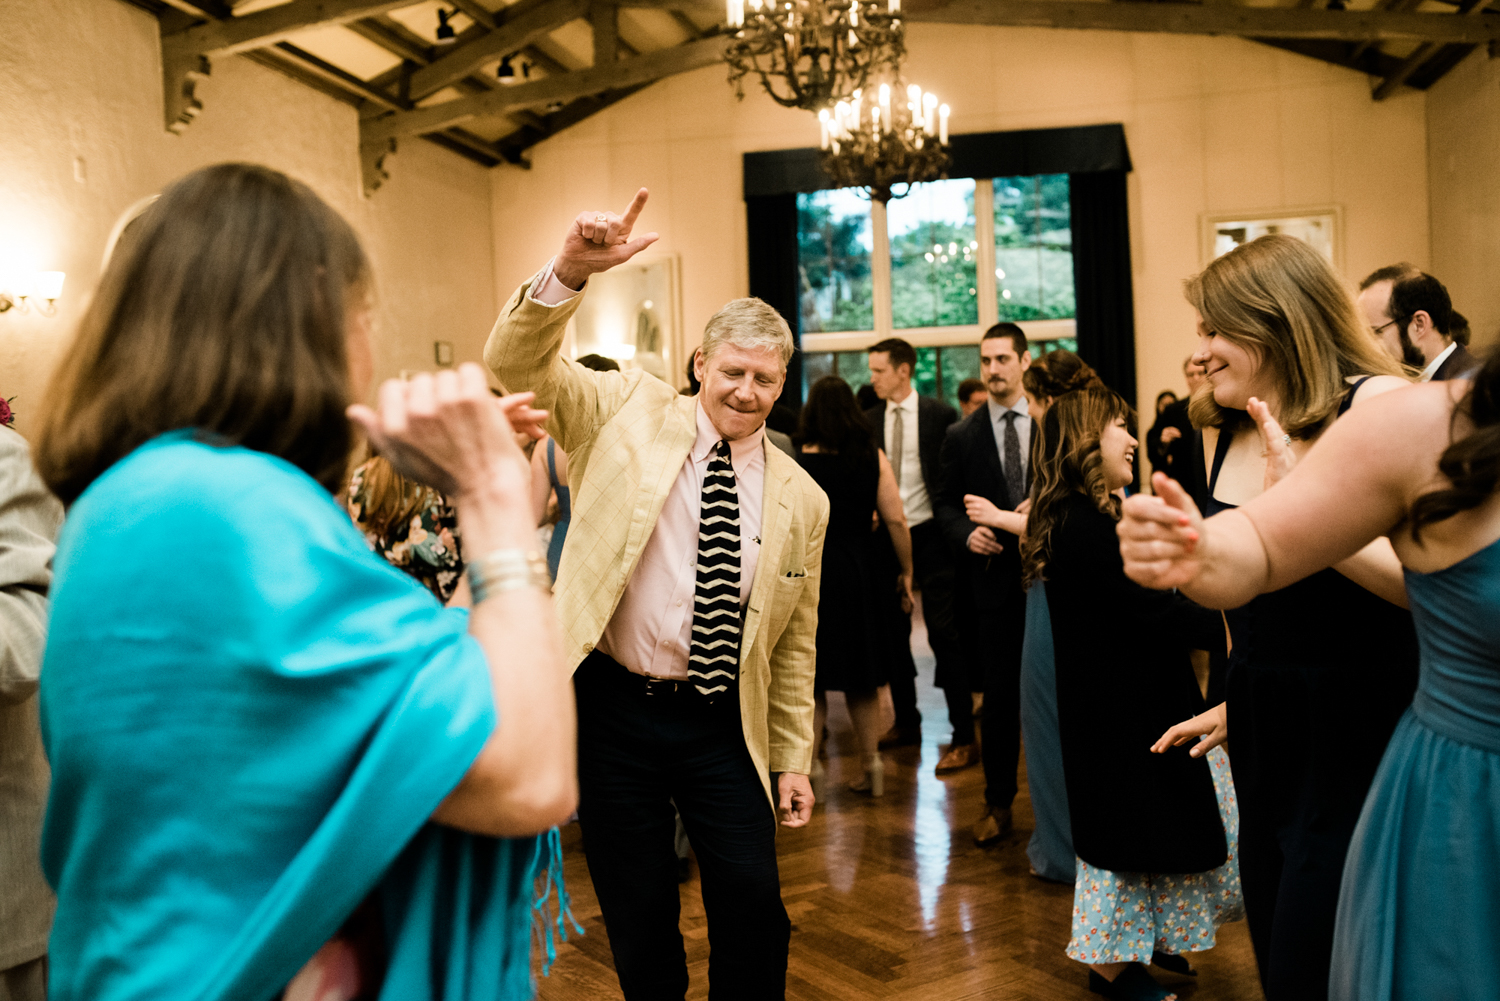 Spring_Piedmont_Community_Hall_Wedding_056.jpg